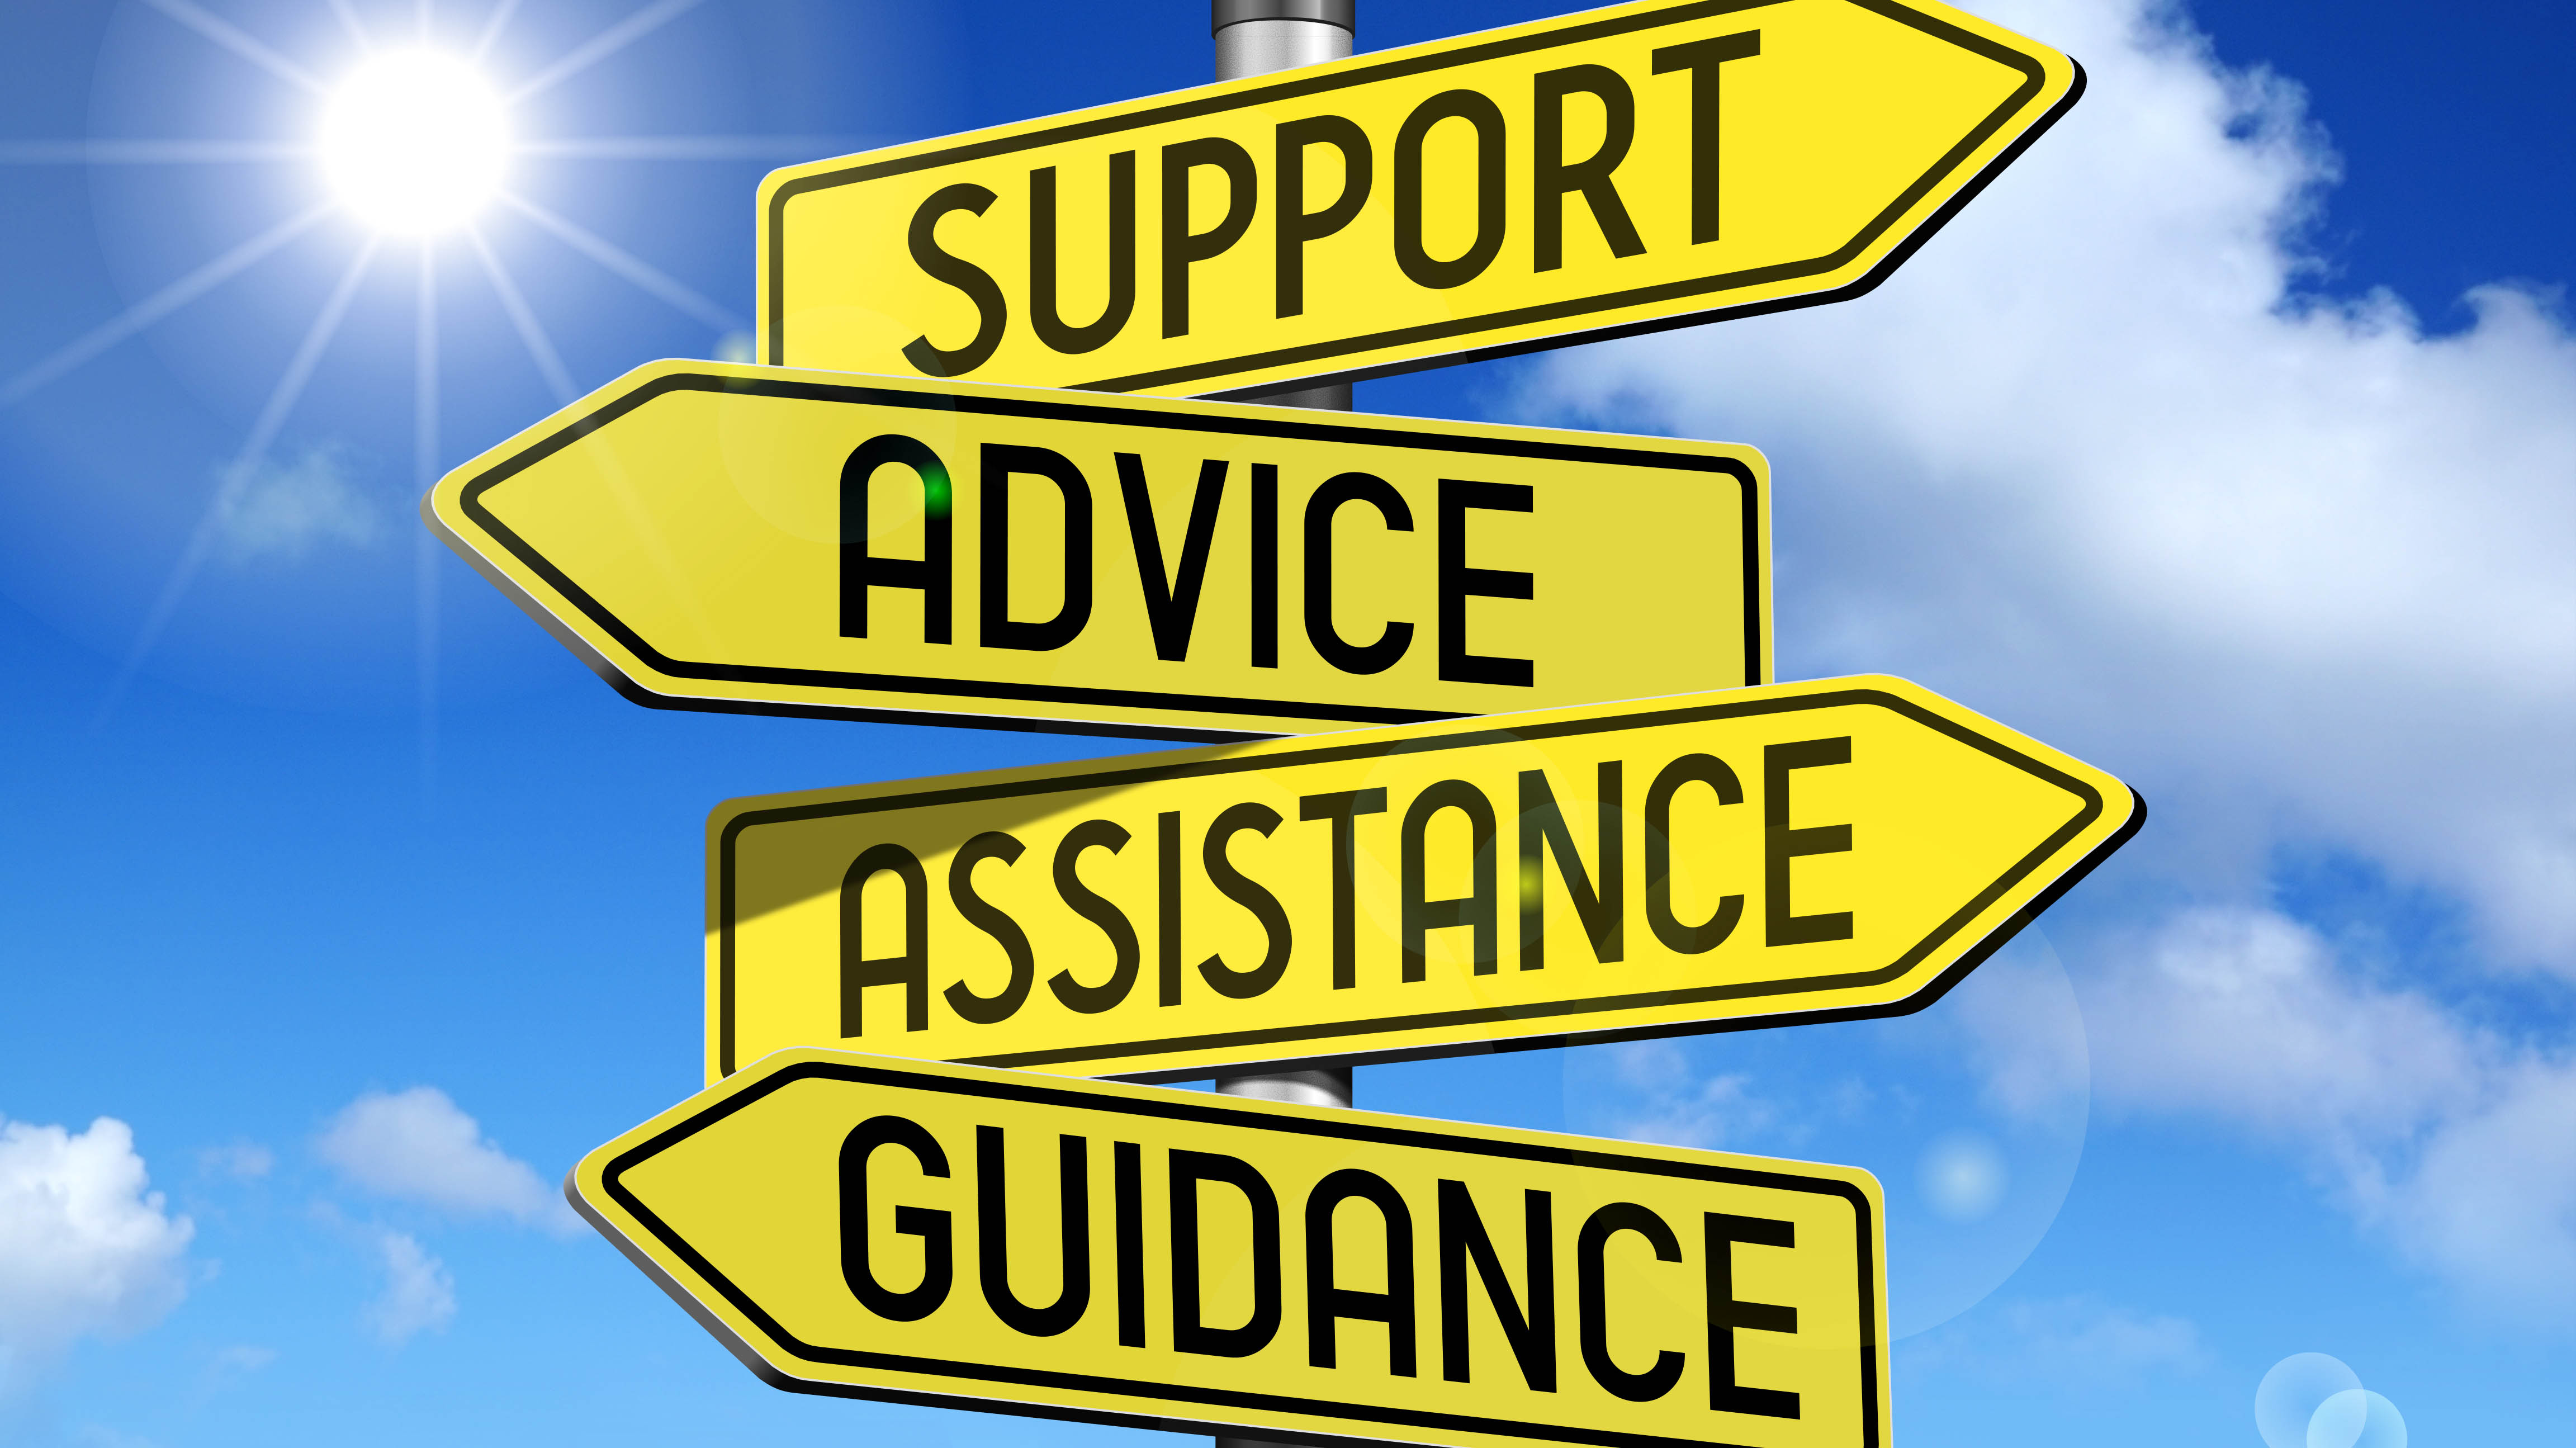 support advice assistance guidance